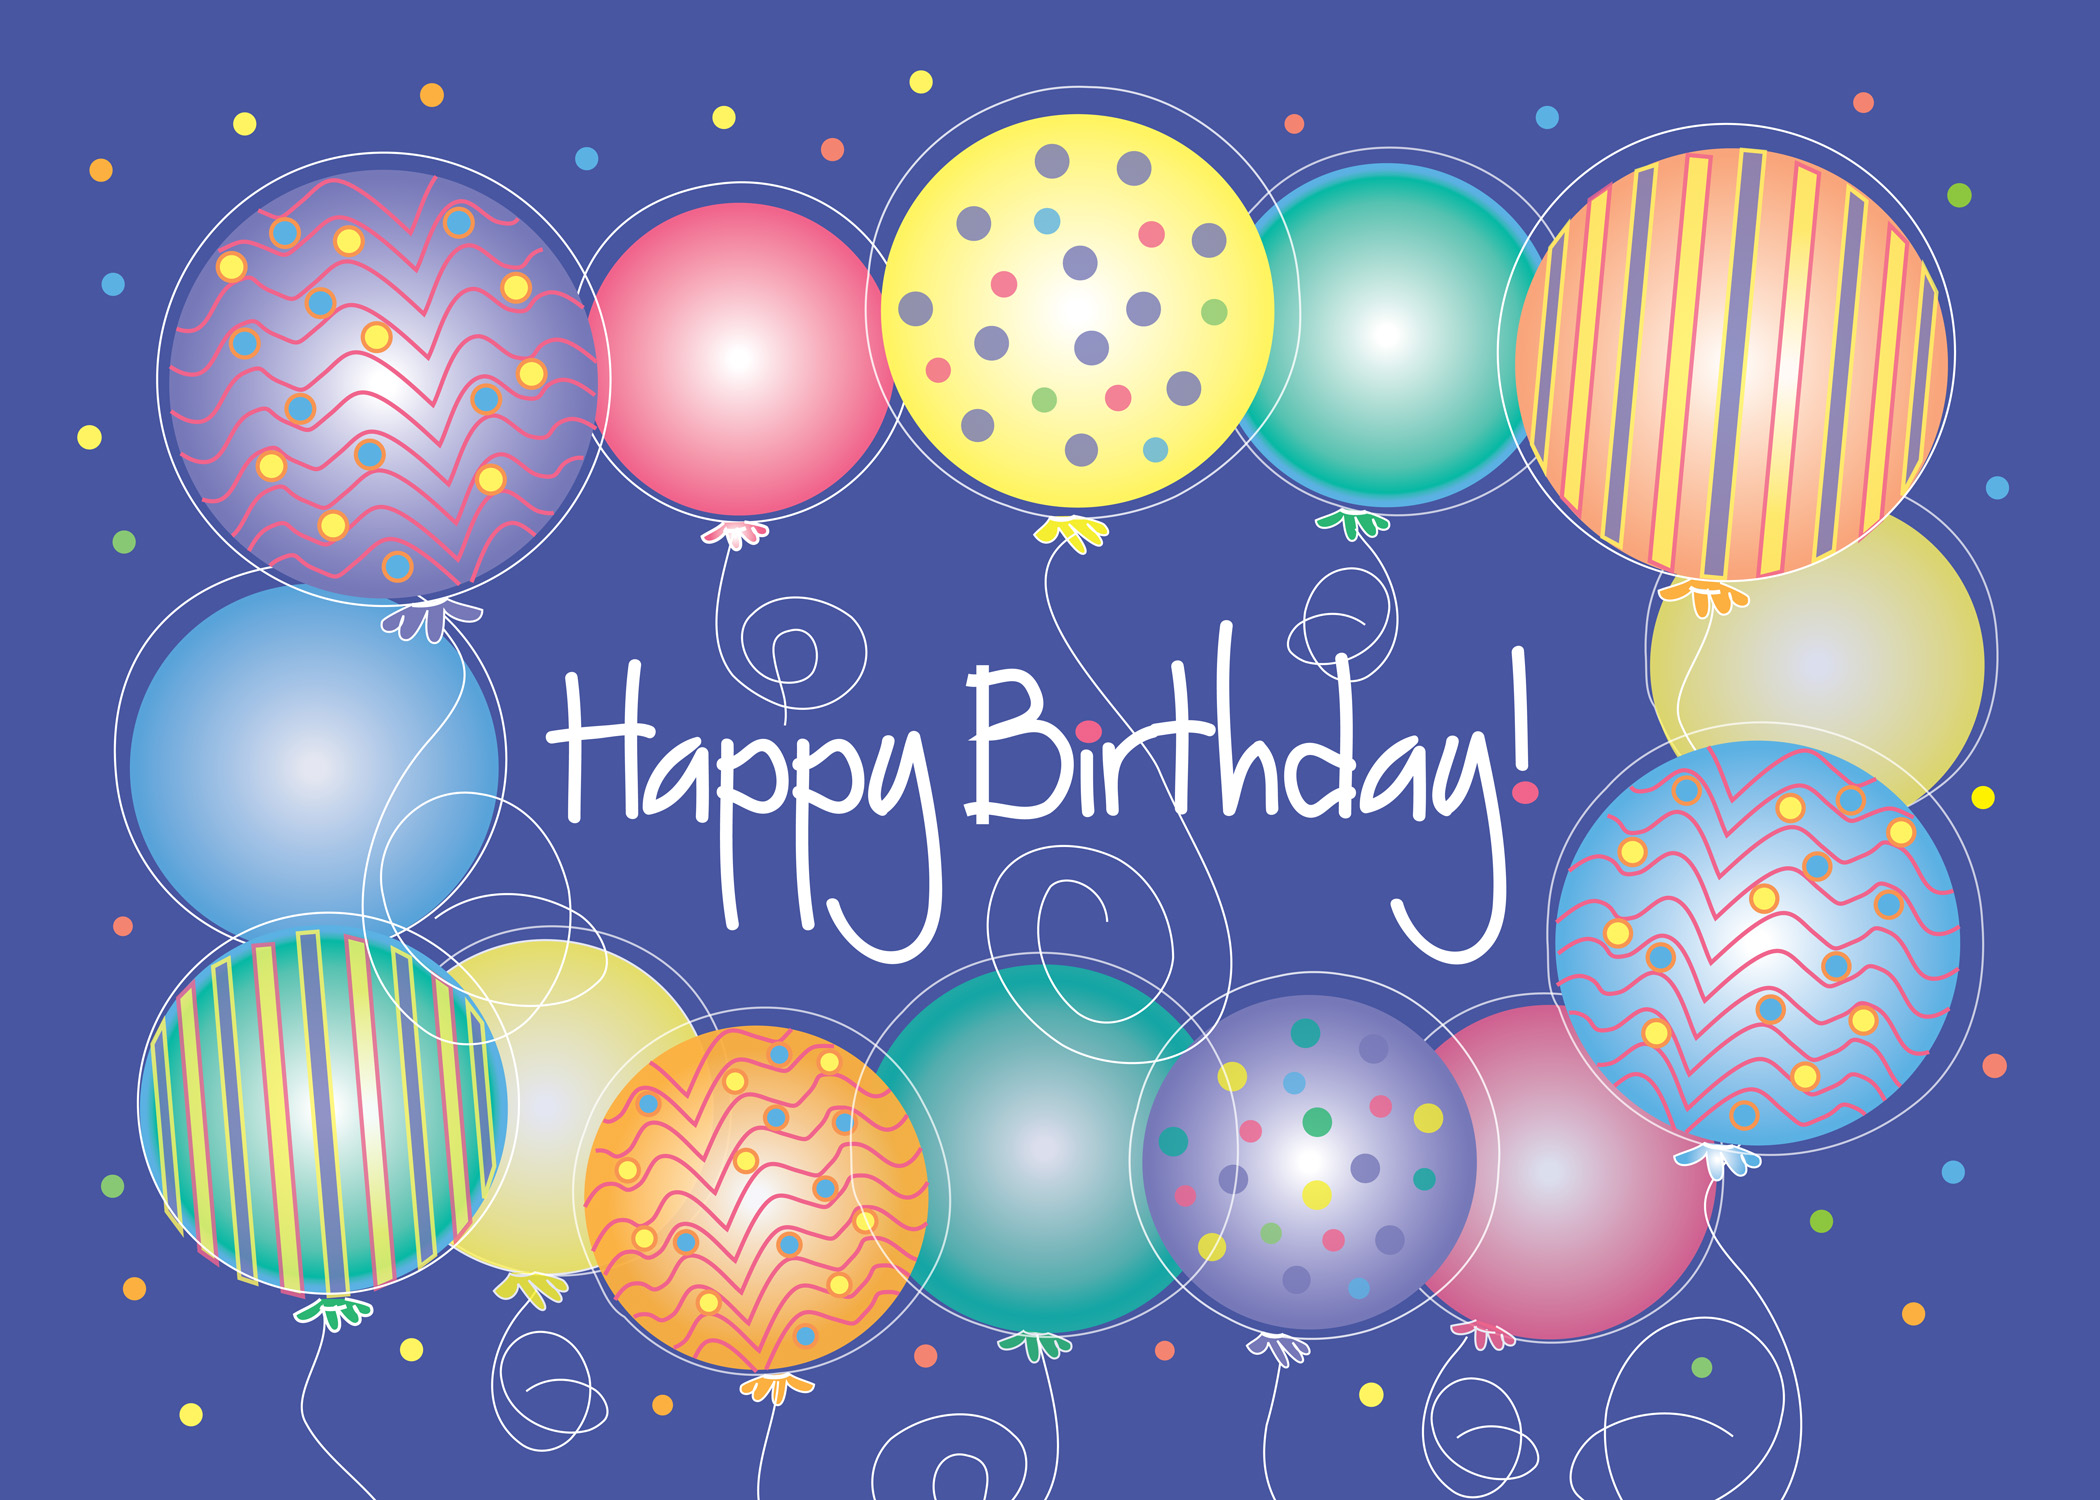 100 Birthday Balloons images